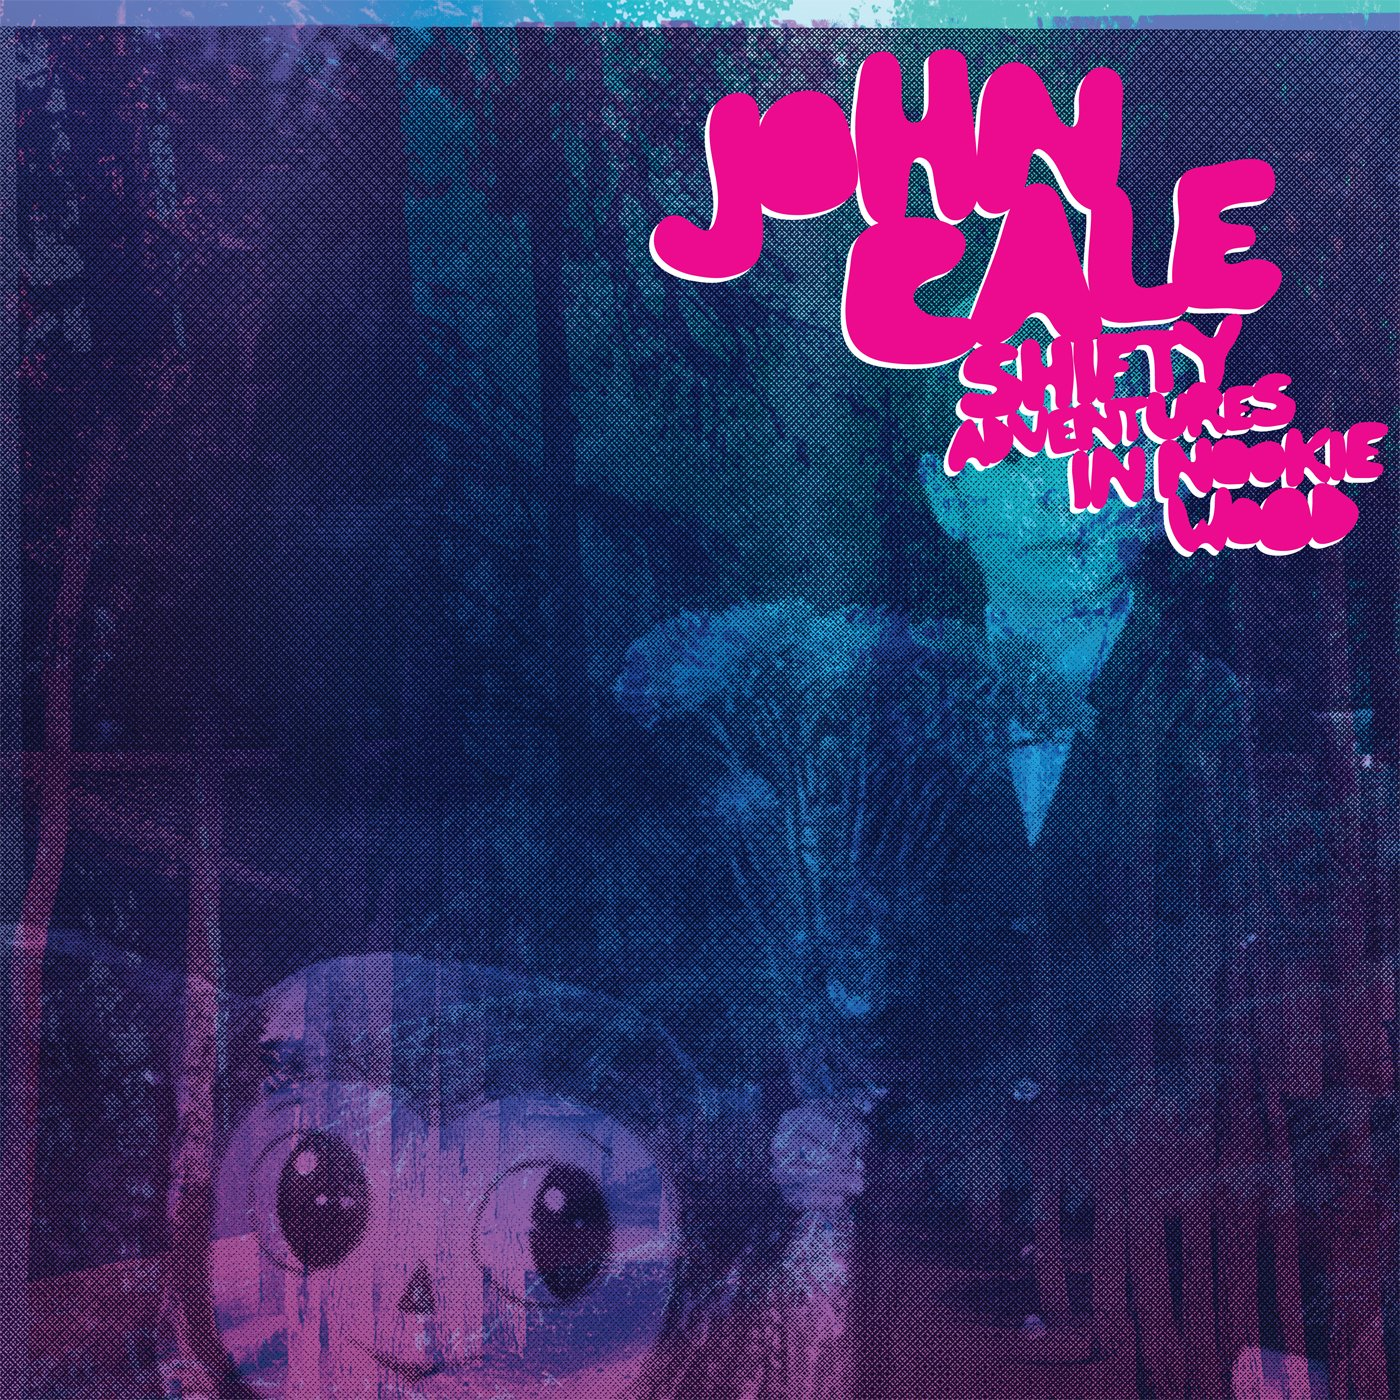 CD : John Cale - Shifty Adventures In Nookie Wood (CD)